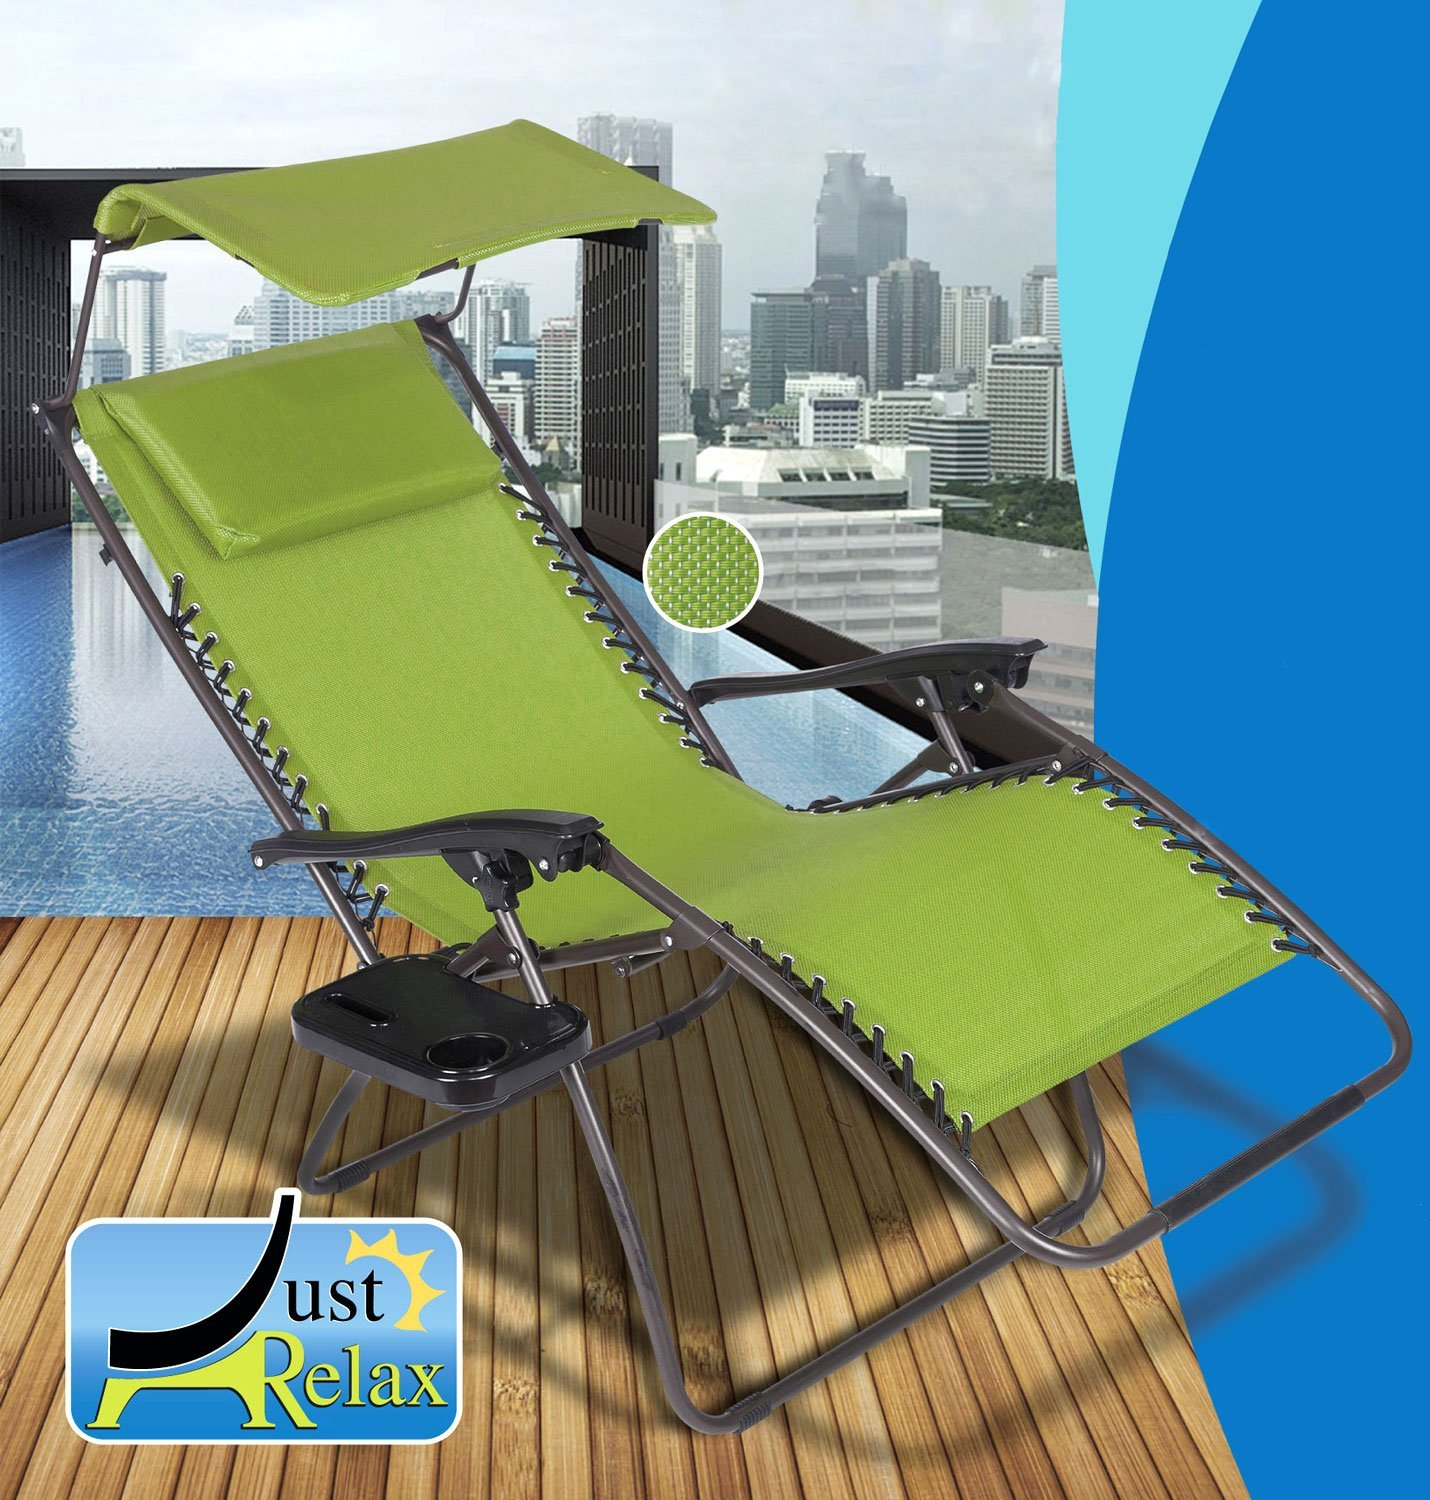 Just Relax Zero Gravity Chair with Pillow, Canopy, and Clip-On Table (Green)